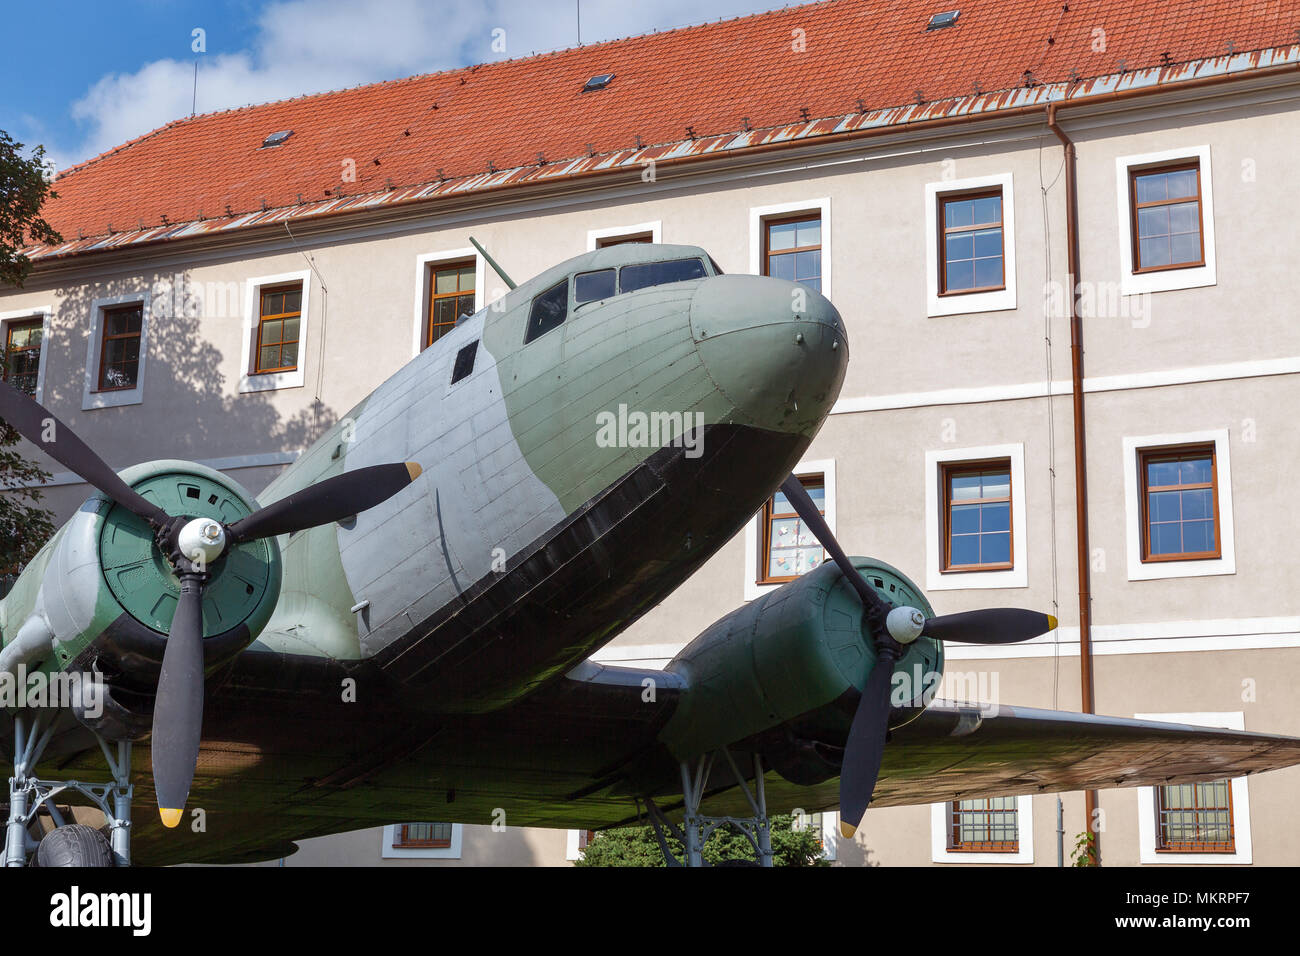 Airplane Li-2 at open air museum of SNP, military equipment from WW2 in Banska Bystrica, Slovakia - Stock Image